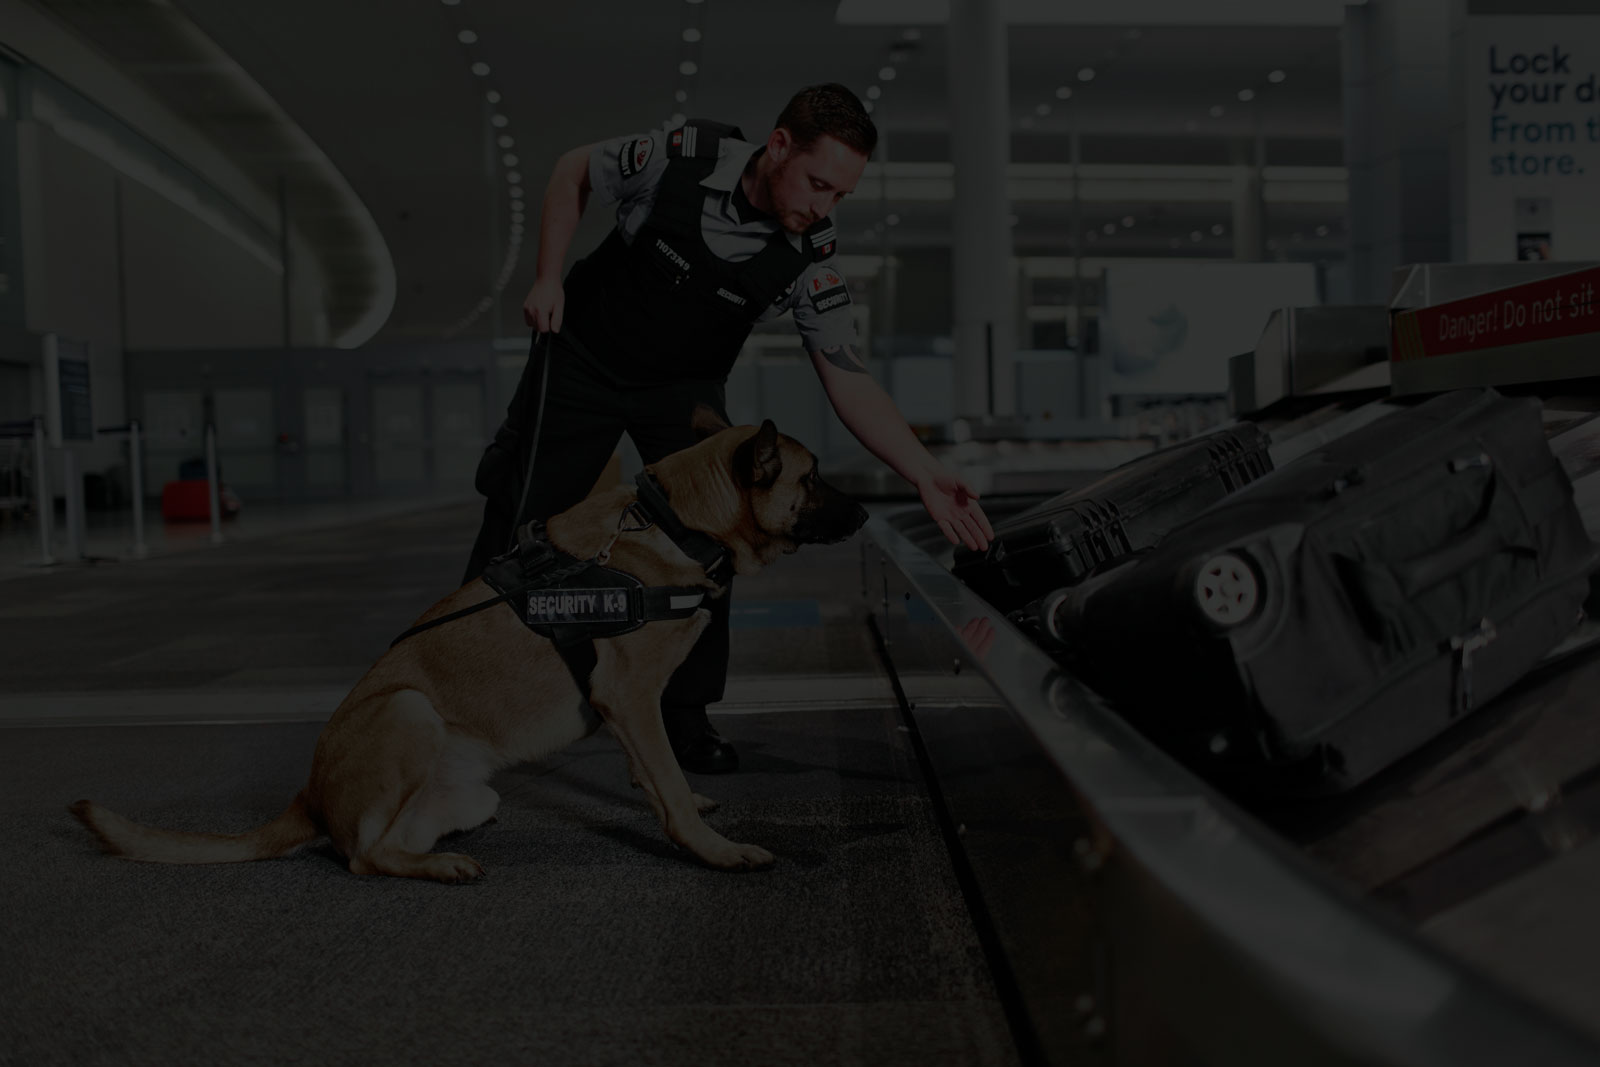 Canine Explosive Device Detection